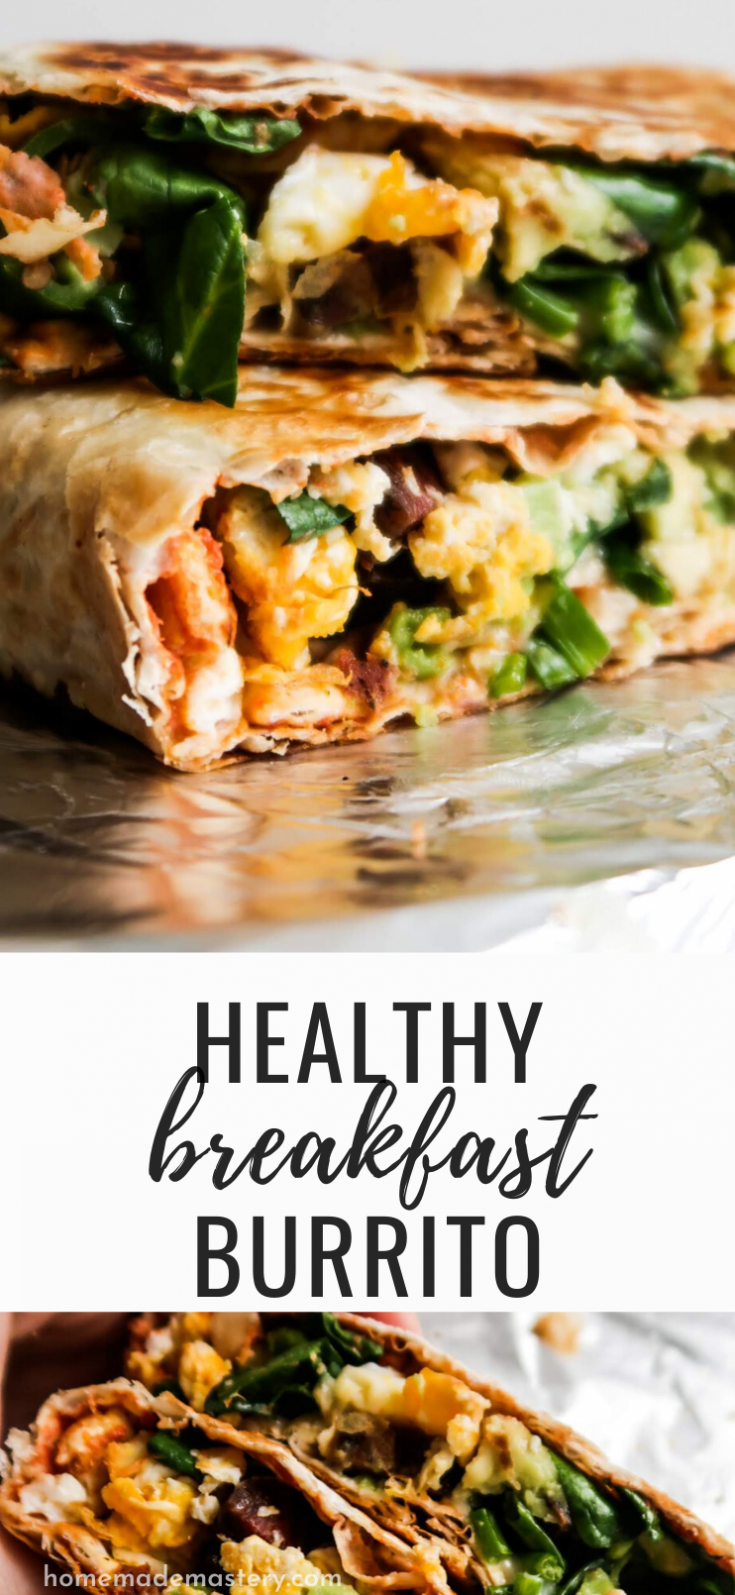 This healthy breakfast burrito recipe is easy and delicious! Filled with eggs, cheese, avocado and vegetables this easy breakfast burrito recipe is a healthy savory breakfast that will keep you full for many hours.